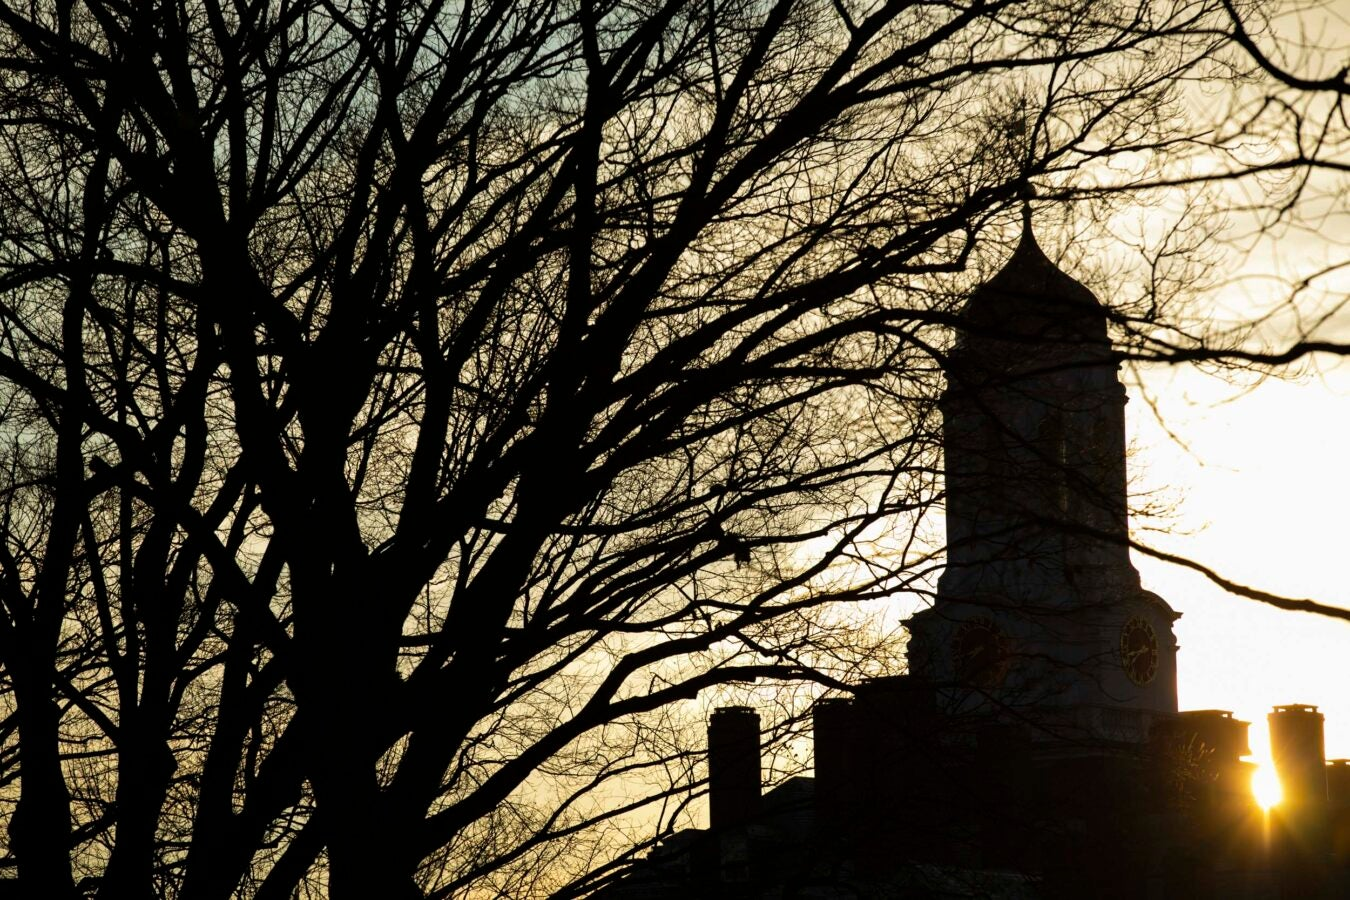 The Dunster House Tower is pictured at sunrise.